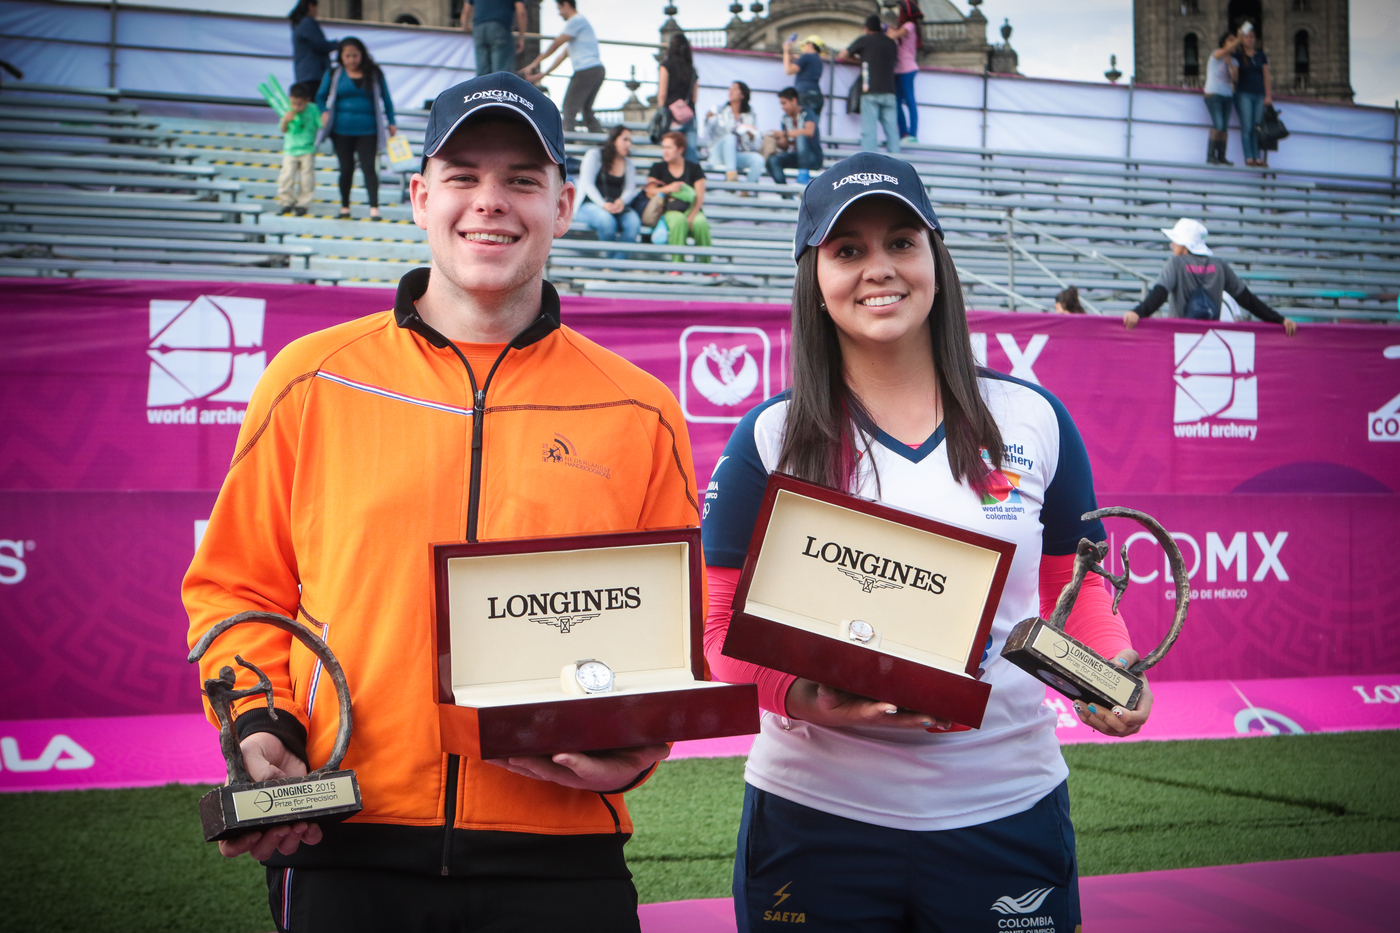 Longines Archery Event: The Longines Prize for Precision: the recognition of excellence  4